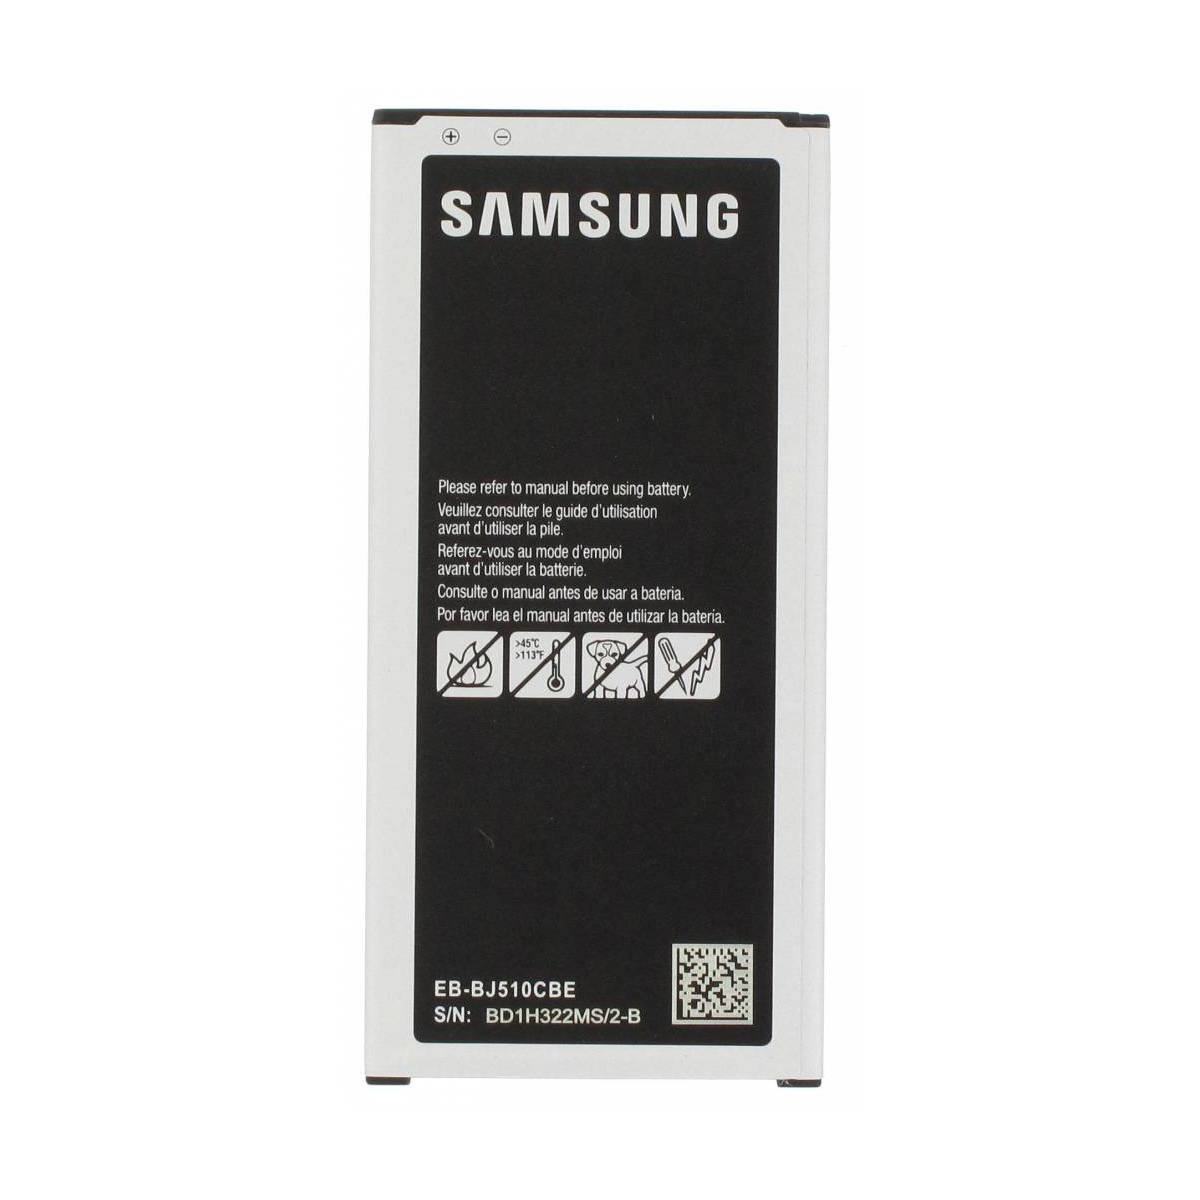 OEM Samsung Galaxy J5 (2016) battery EB-BJ510CBE 3100 mAh for SM-J510 Pic0